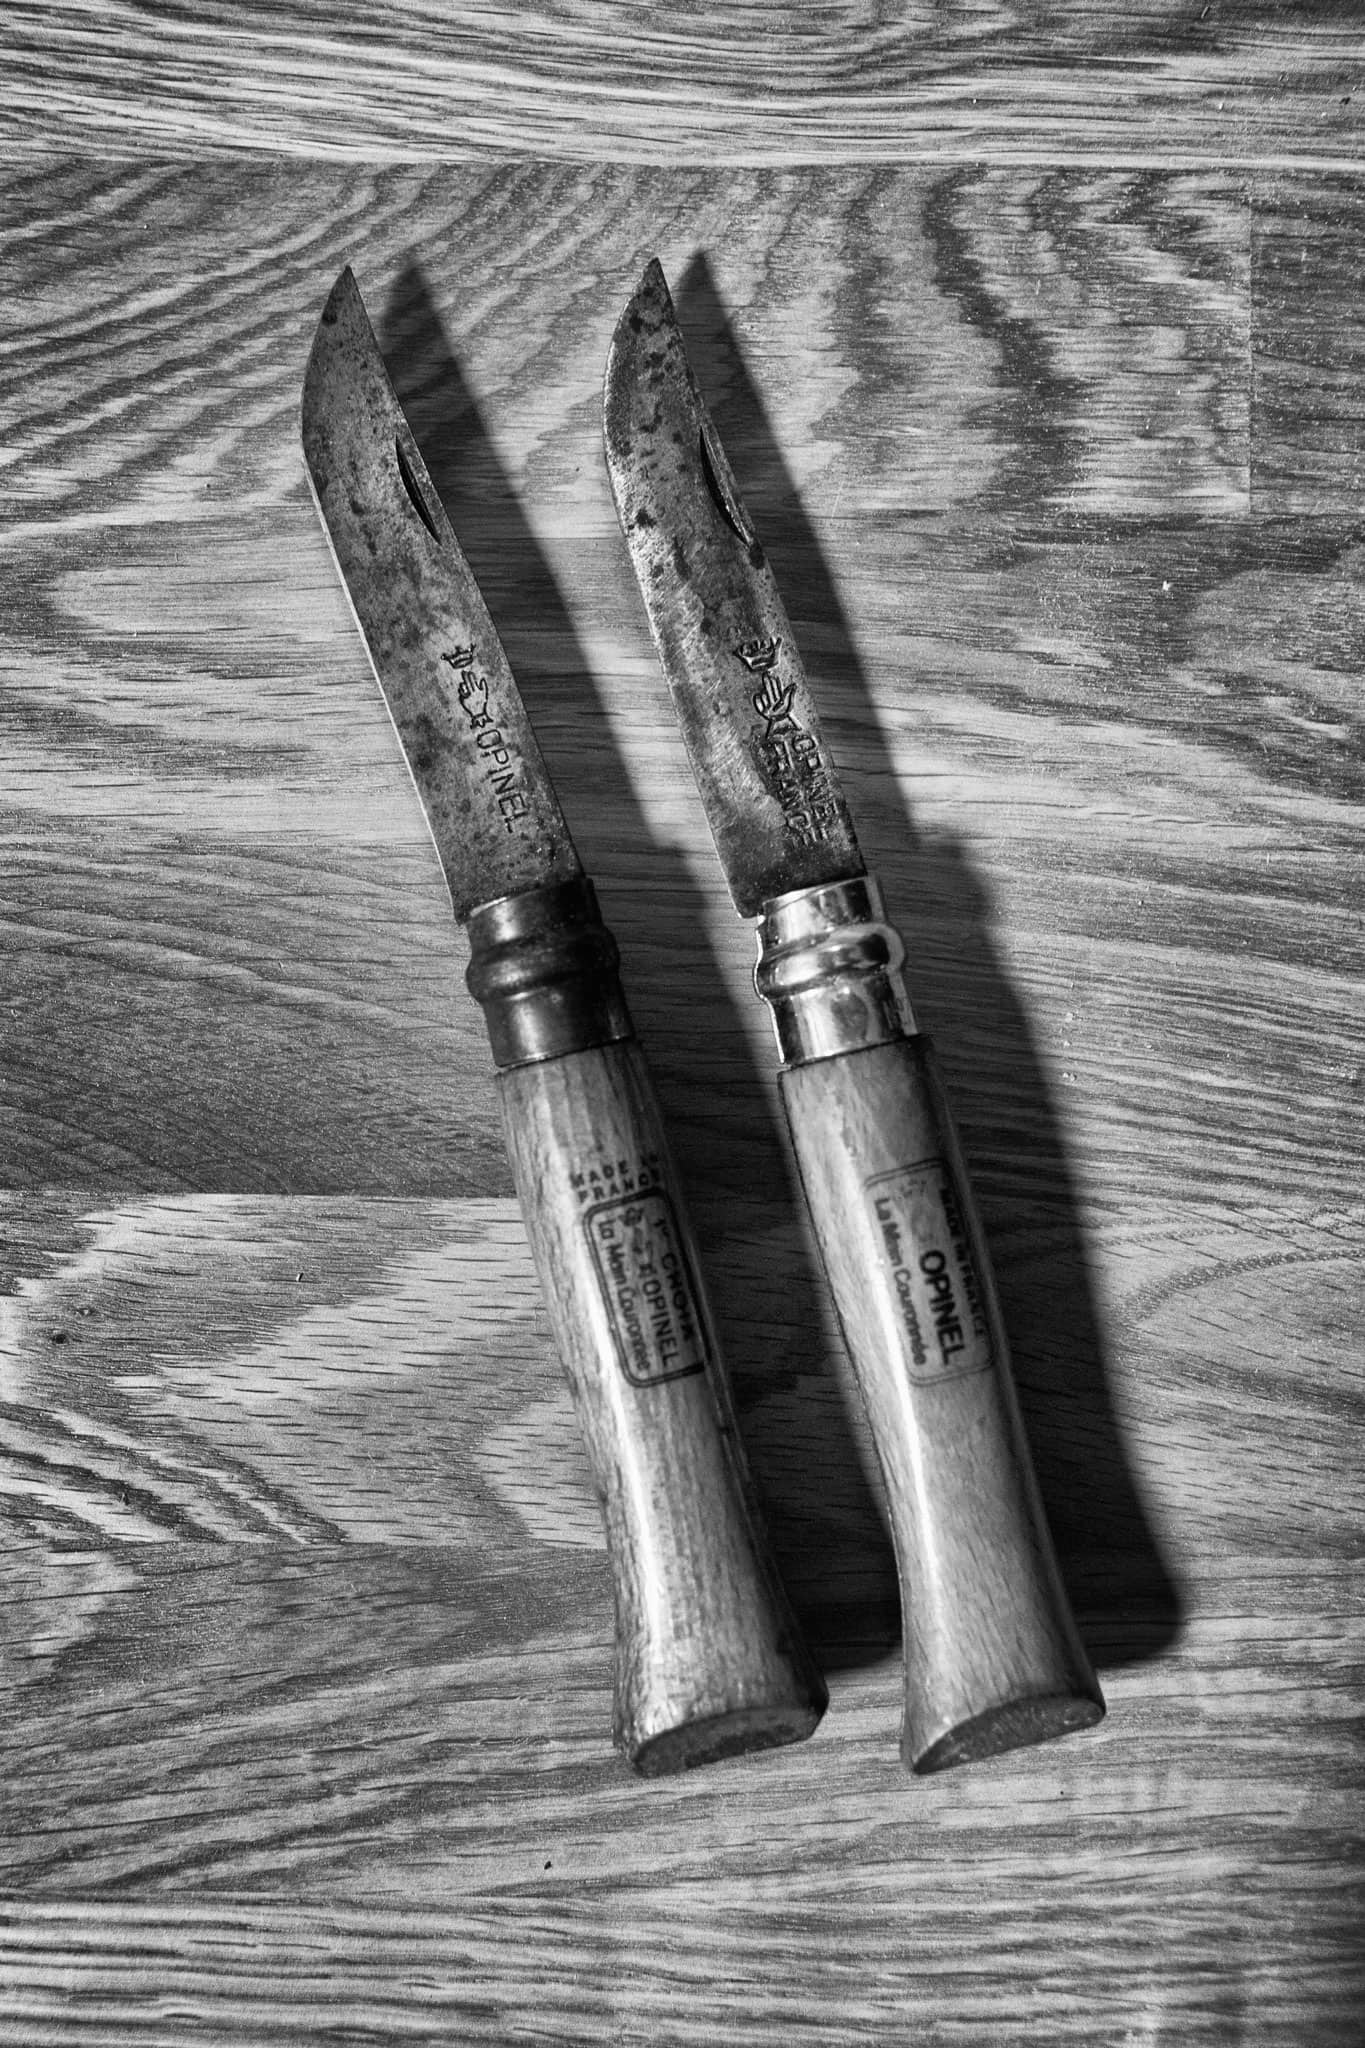 Opinel knife No. 8 photograph by Nathan Thomas Jones